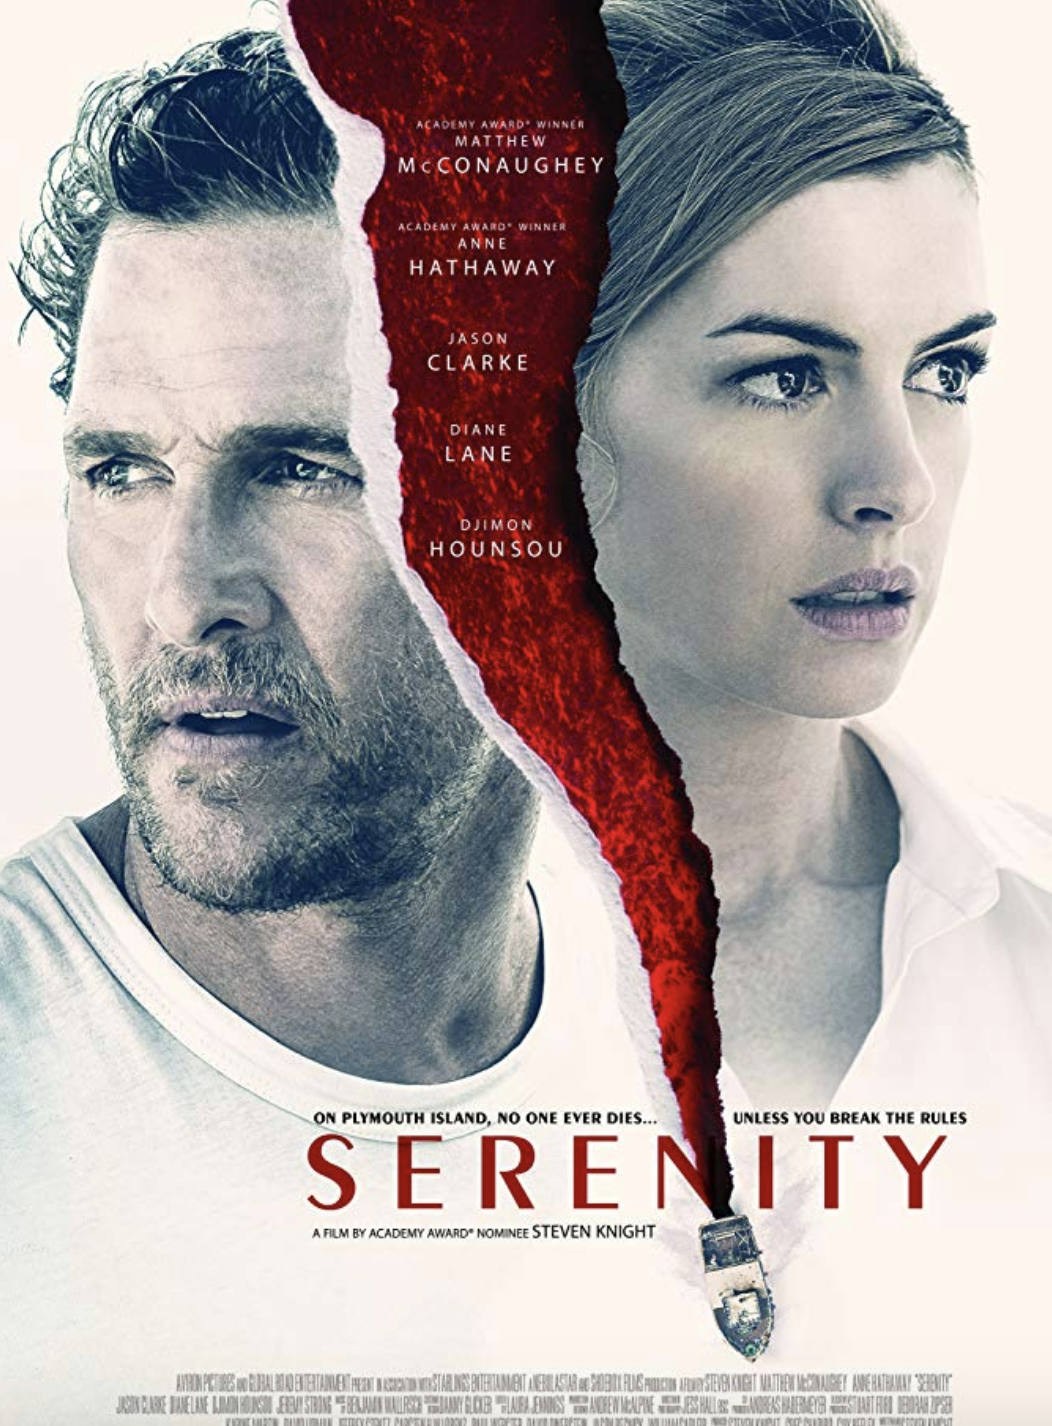 MovieTalk: Serenity, on the same level as The Room